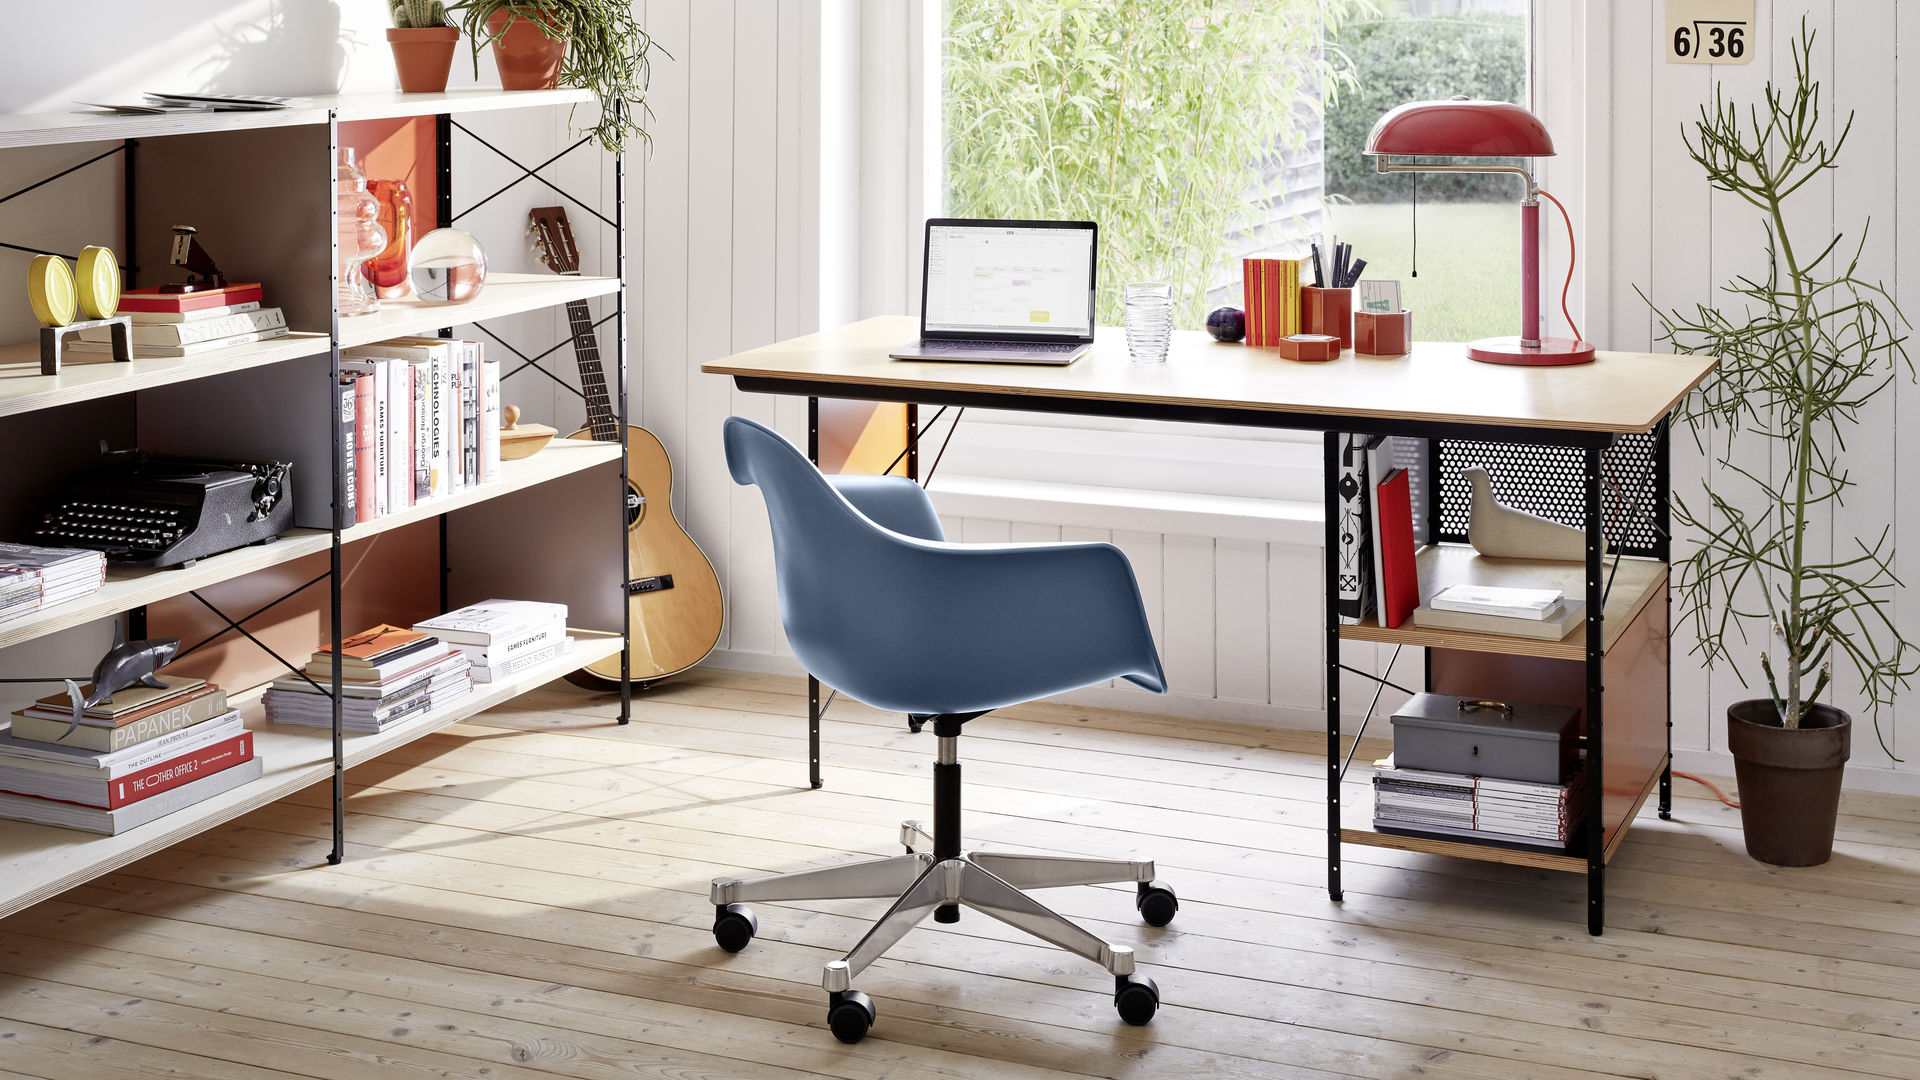 Eames Desk Unit EDU Eames Storage Unit ESU PACC seablue Hexagonal Containers L'Oiseau_web_16-9